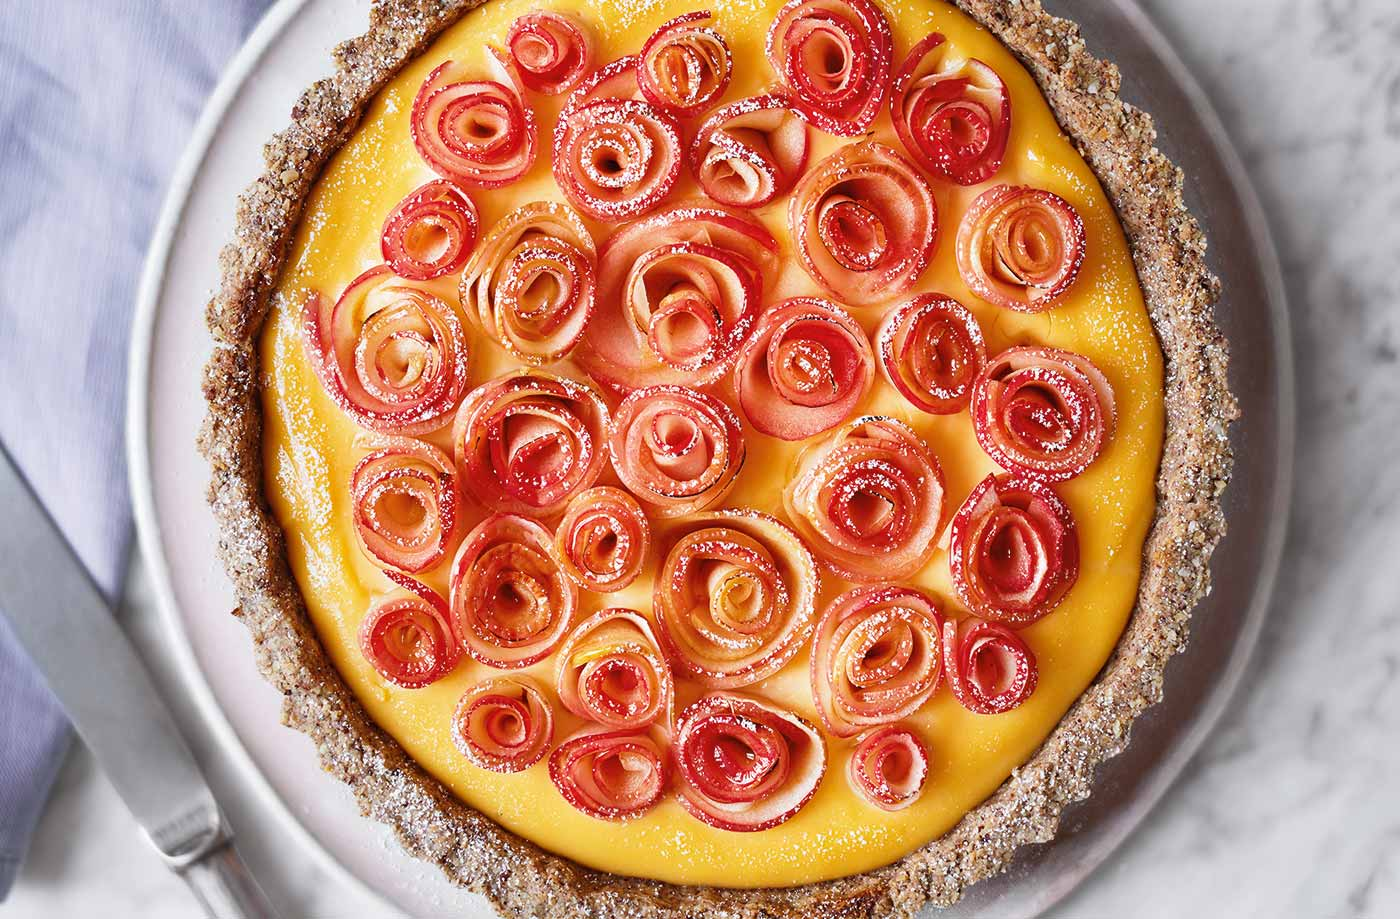 Apple 'rose' custard tart